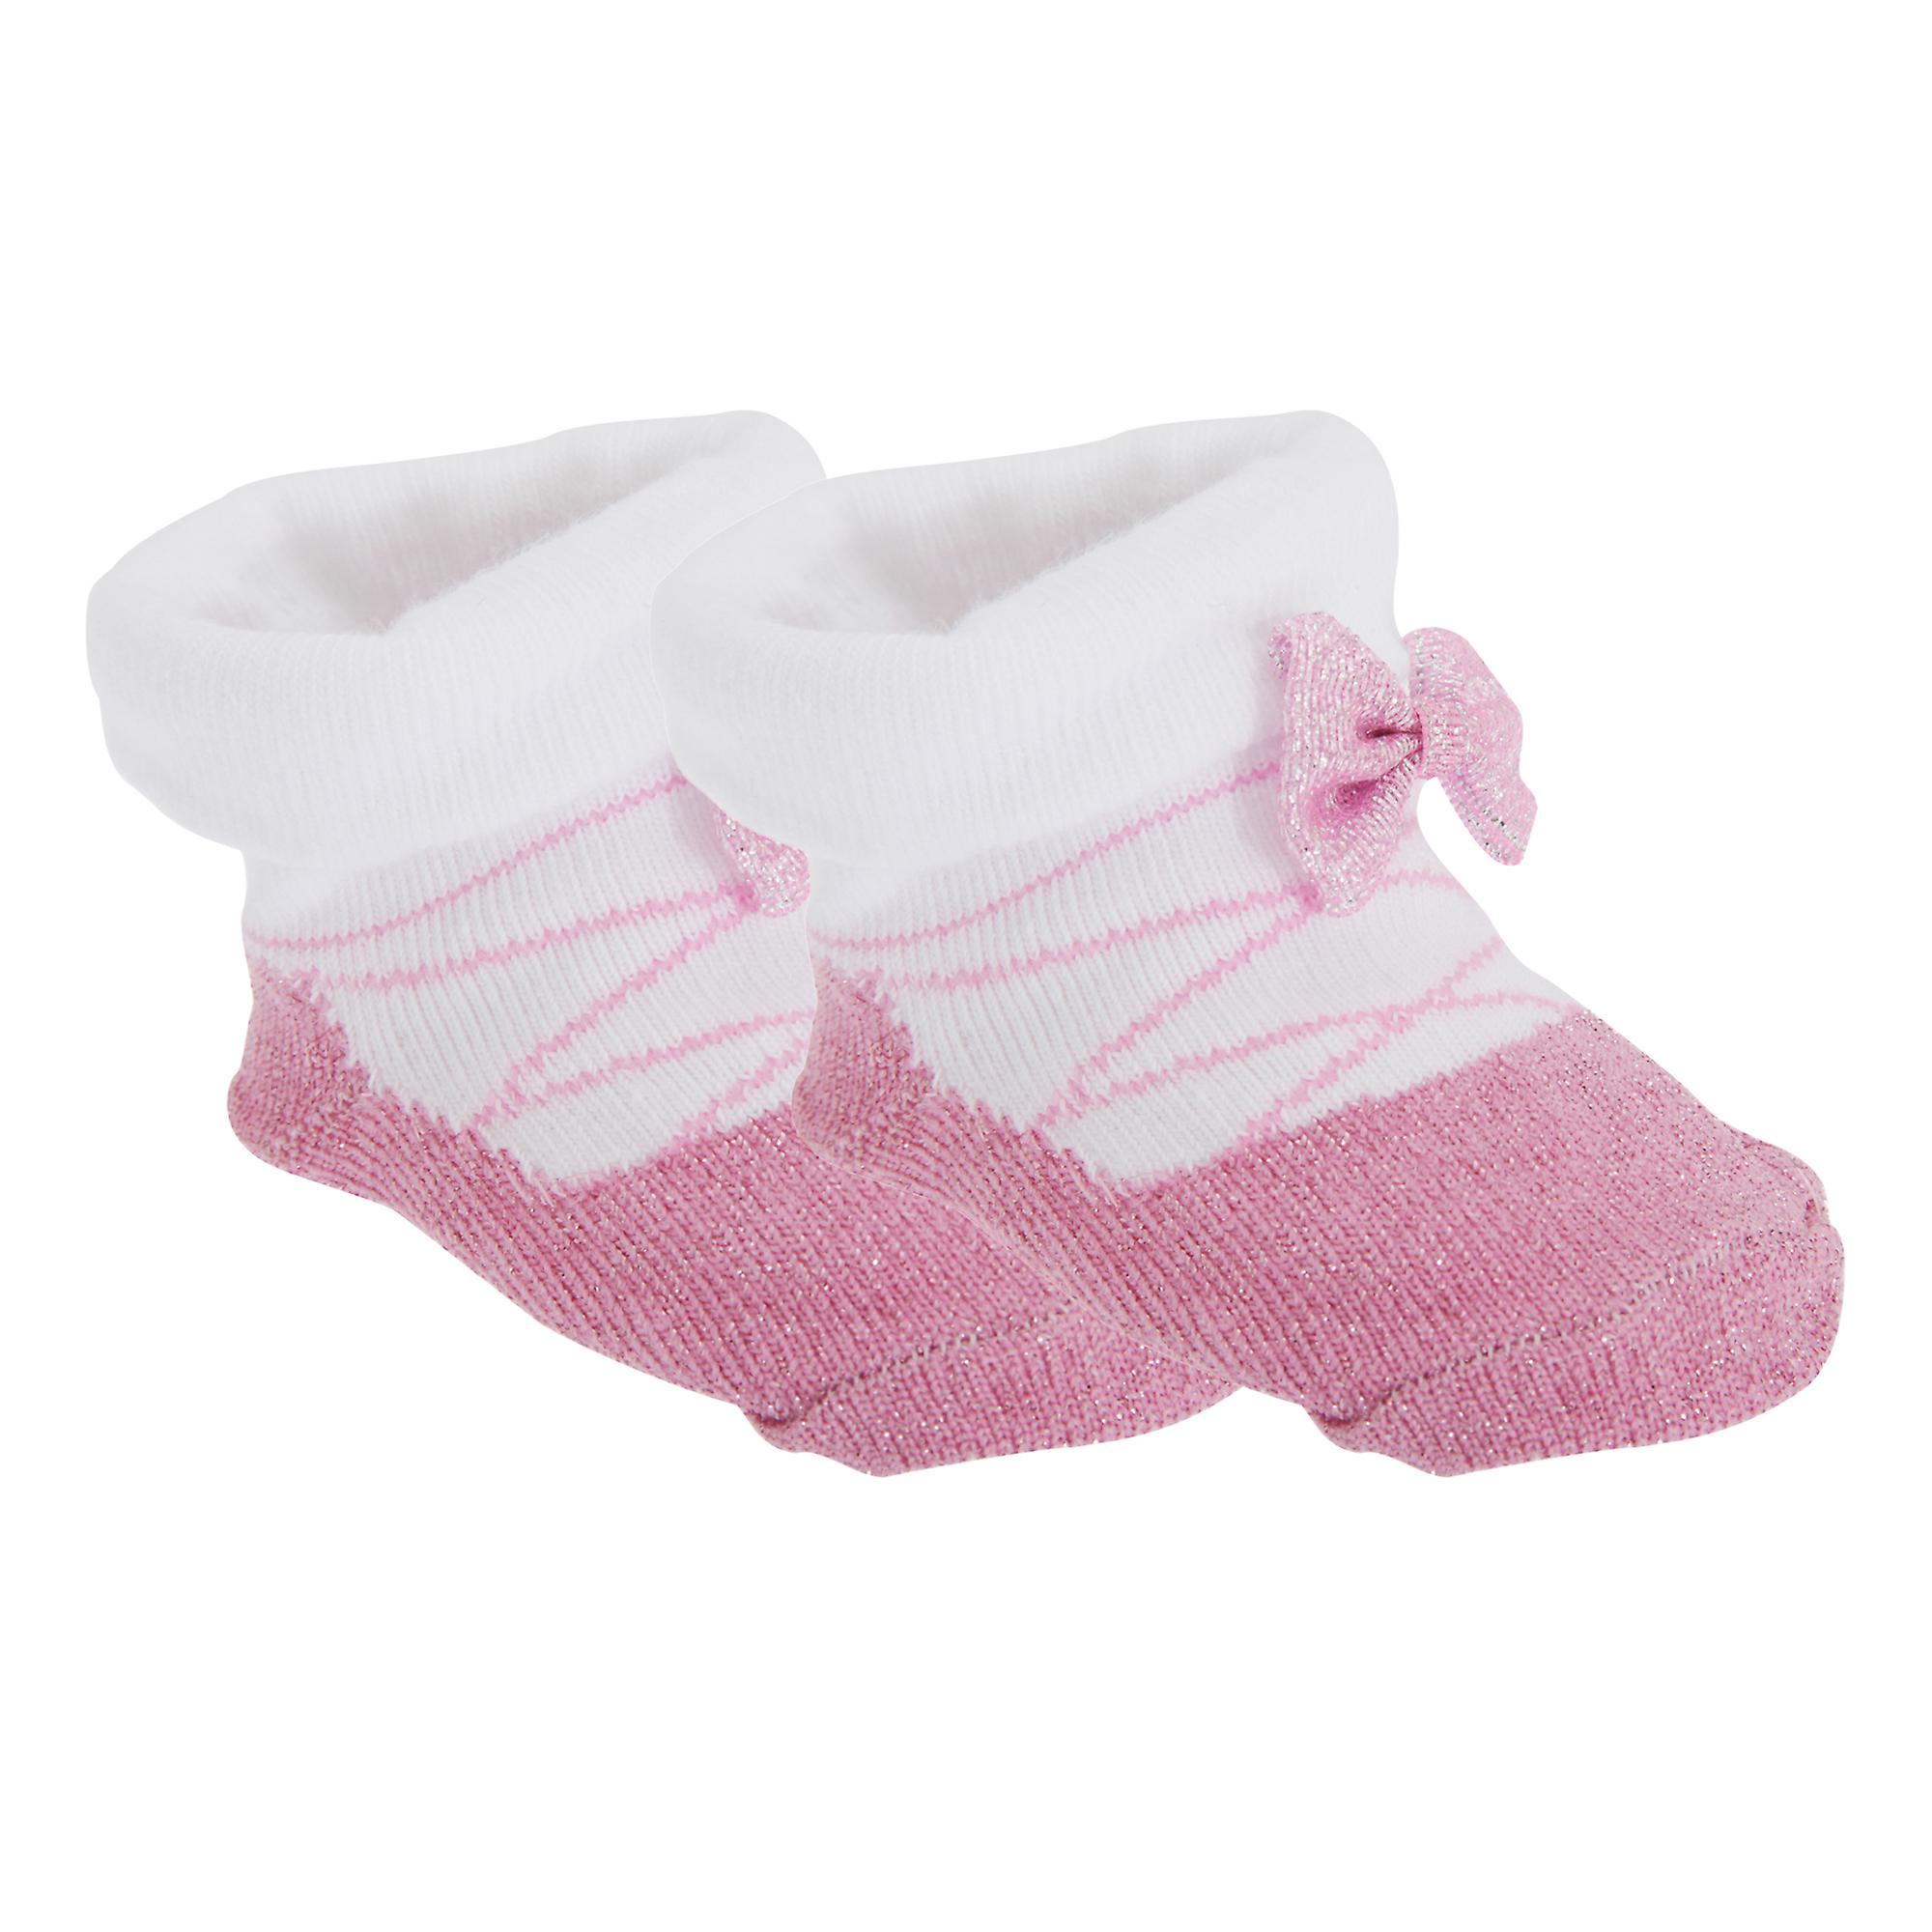 Baby Girls Little Angel Glitter Bootie Socks With Gift Pouch (Pack Of 2)